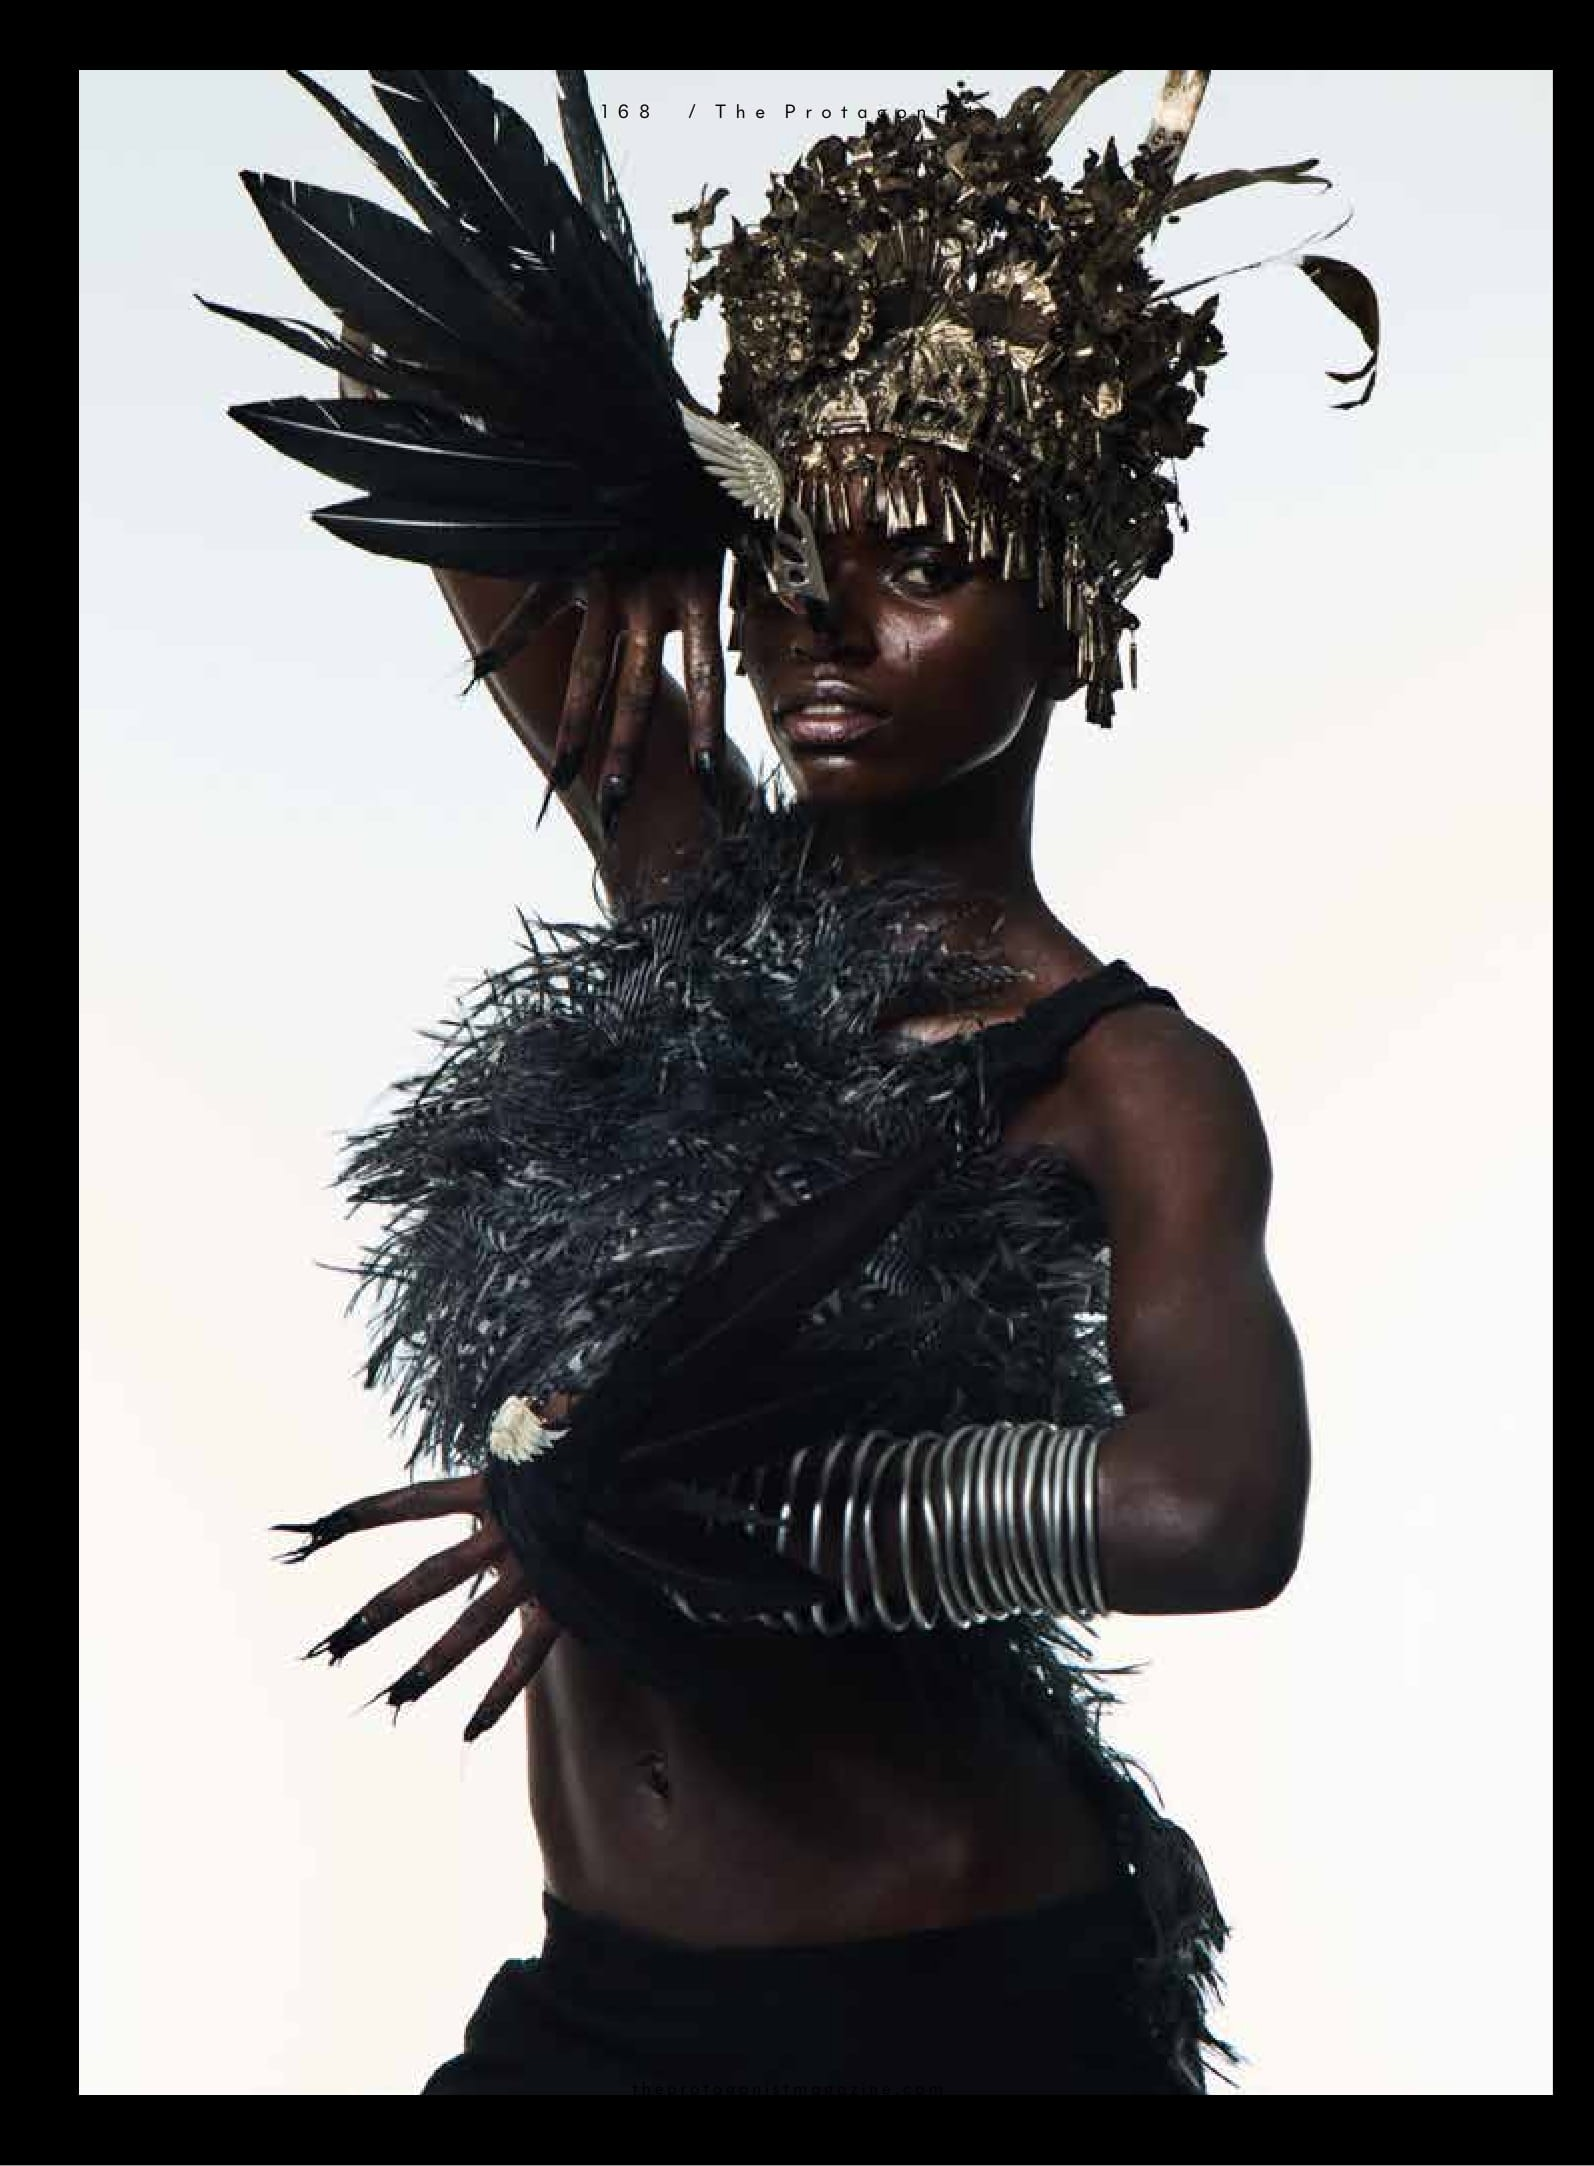 Black bumsters Alexander McQueen Nihilism collection SS1994. Metal headpiece and metal arm piece Pebble London. Feather brodice and feather top Carlos Miele. Black string vest Brixton Market. Victory feather winged thumb rings made to order Odette Jewellery.